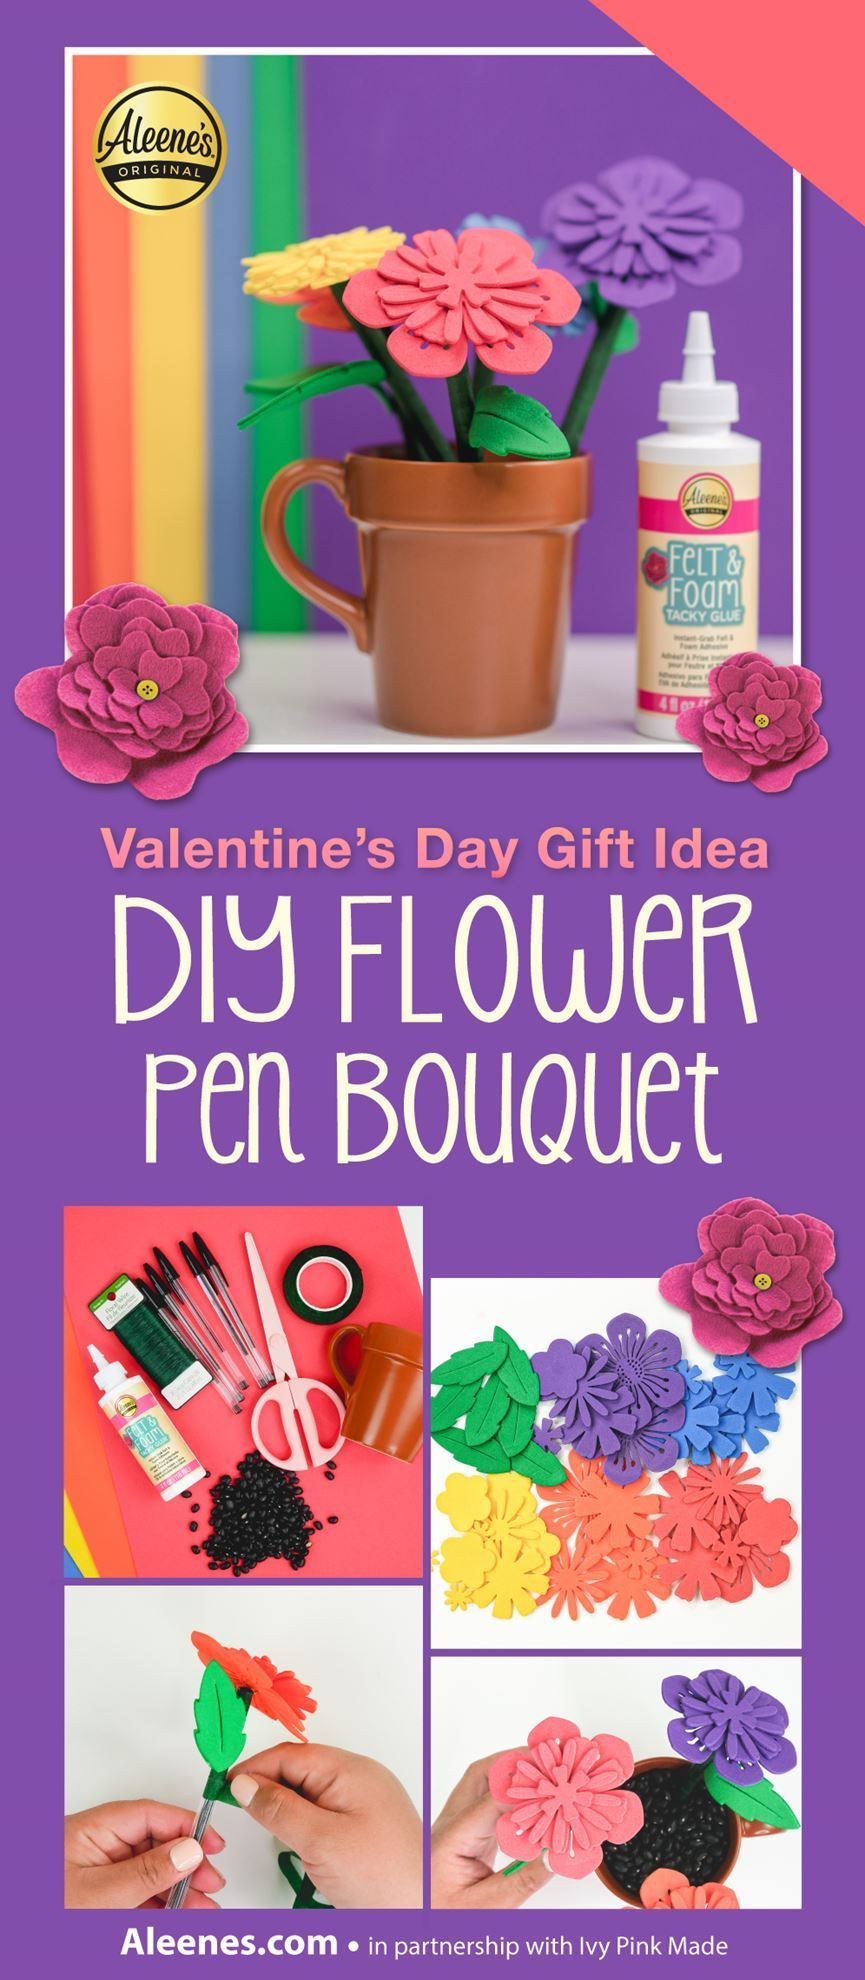 How To Make Flower Pens with Felt & Foam Glue